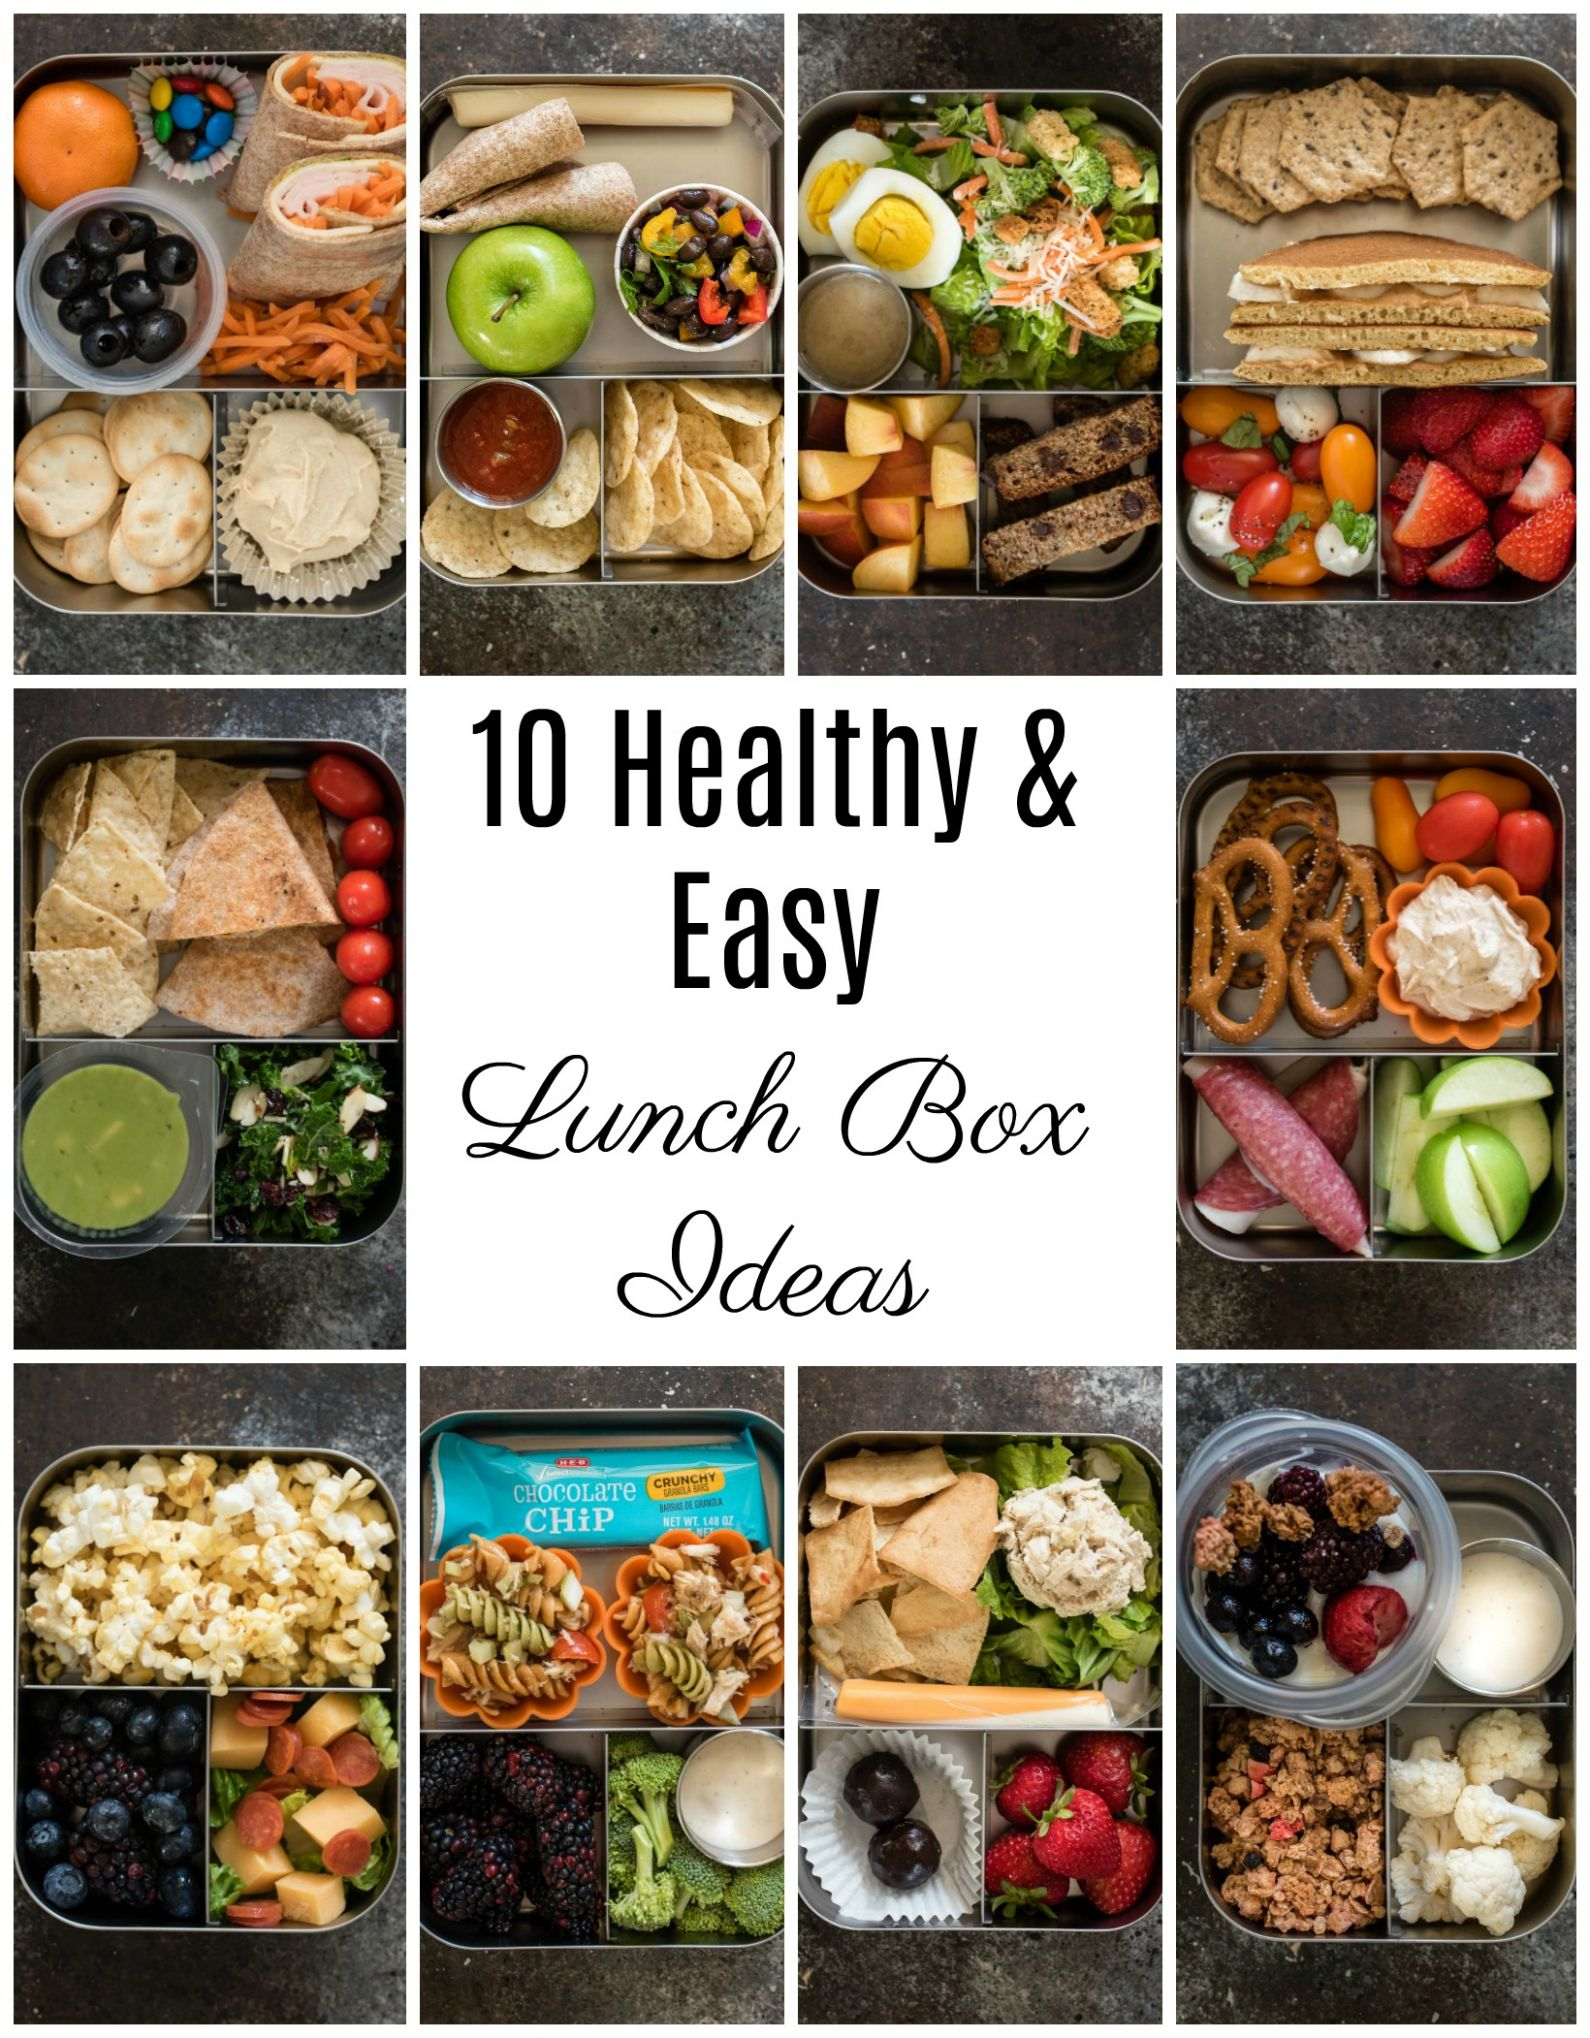 Pancake Sandwich and Healthy LunchBoxes - Sandwich Recipes Diet